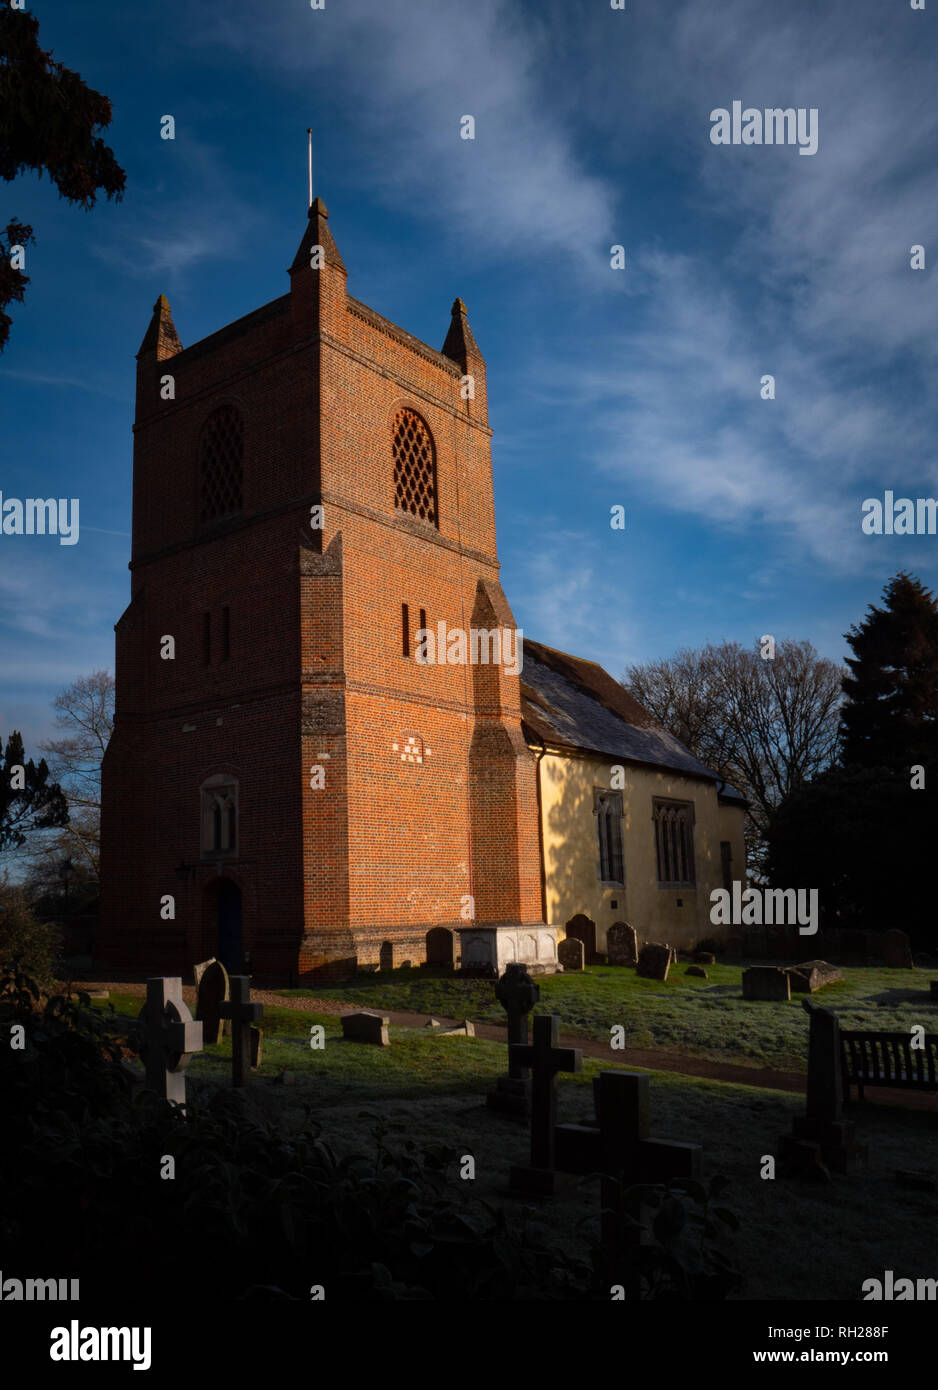 English village church with tower and cemetery with tombstones in early morning sunlight Stock Photo